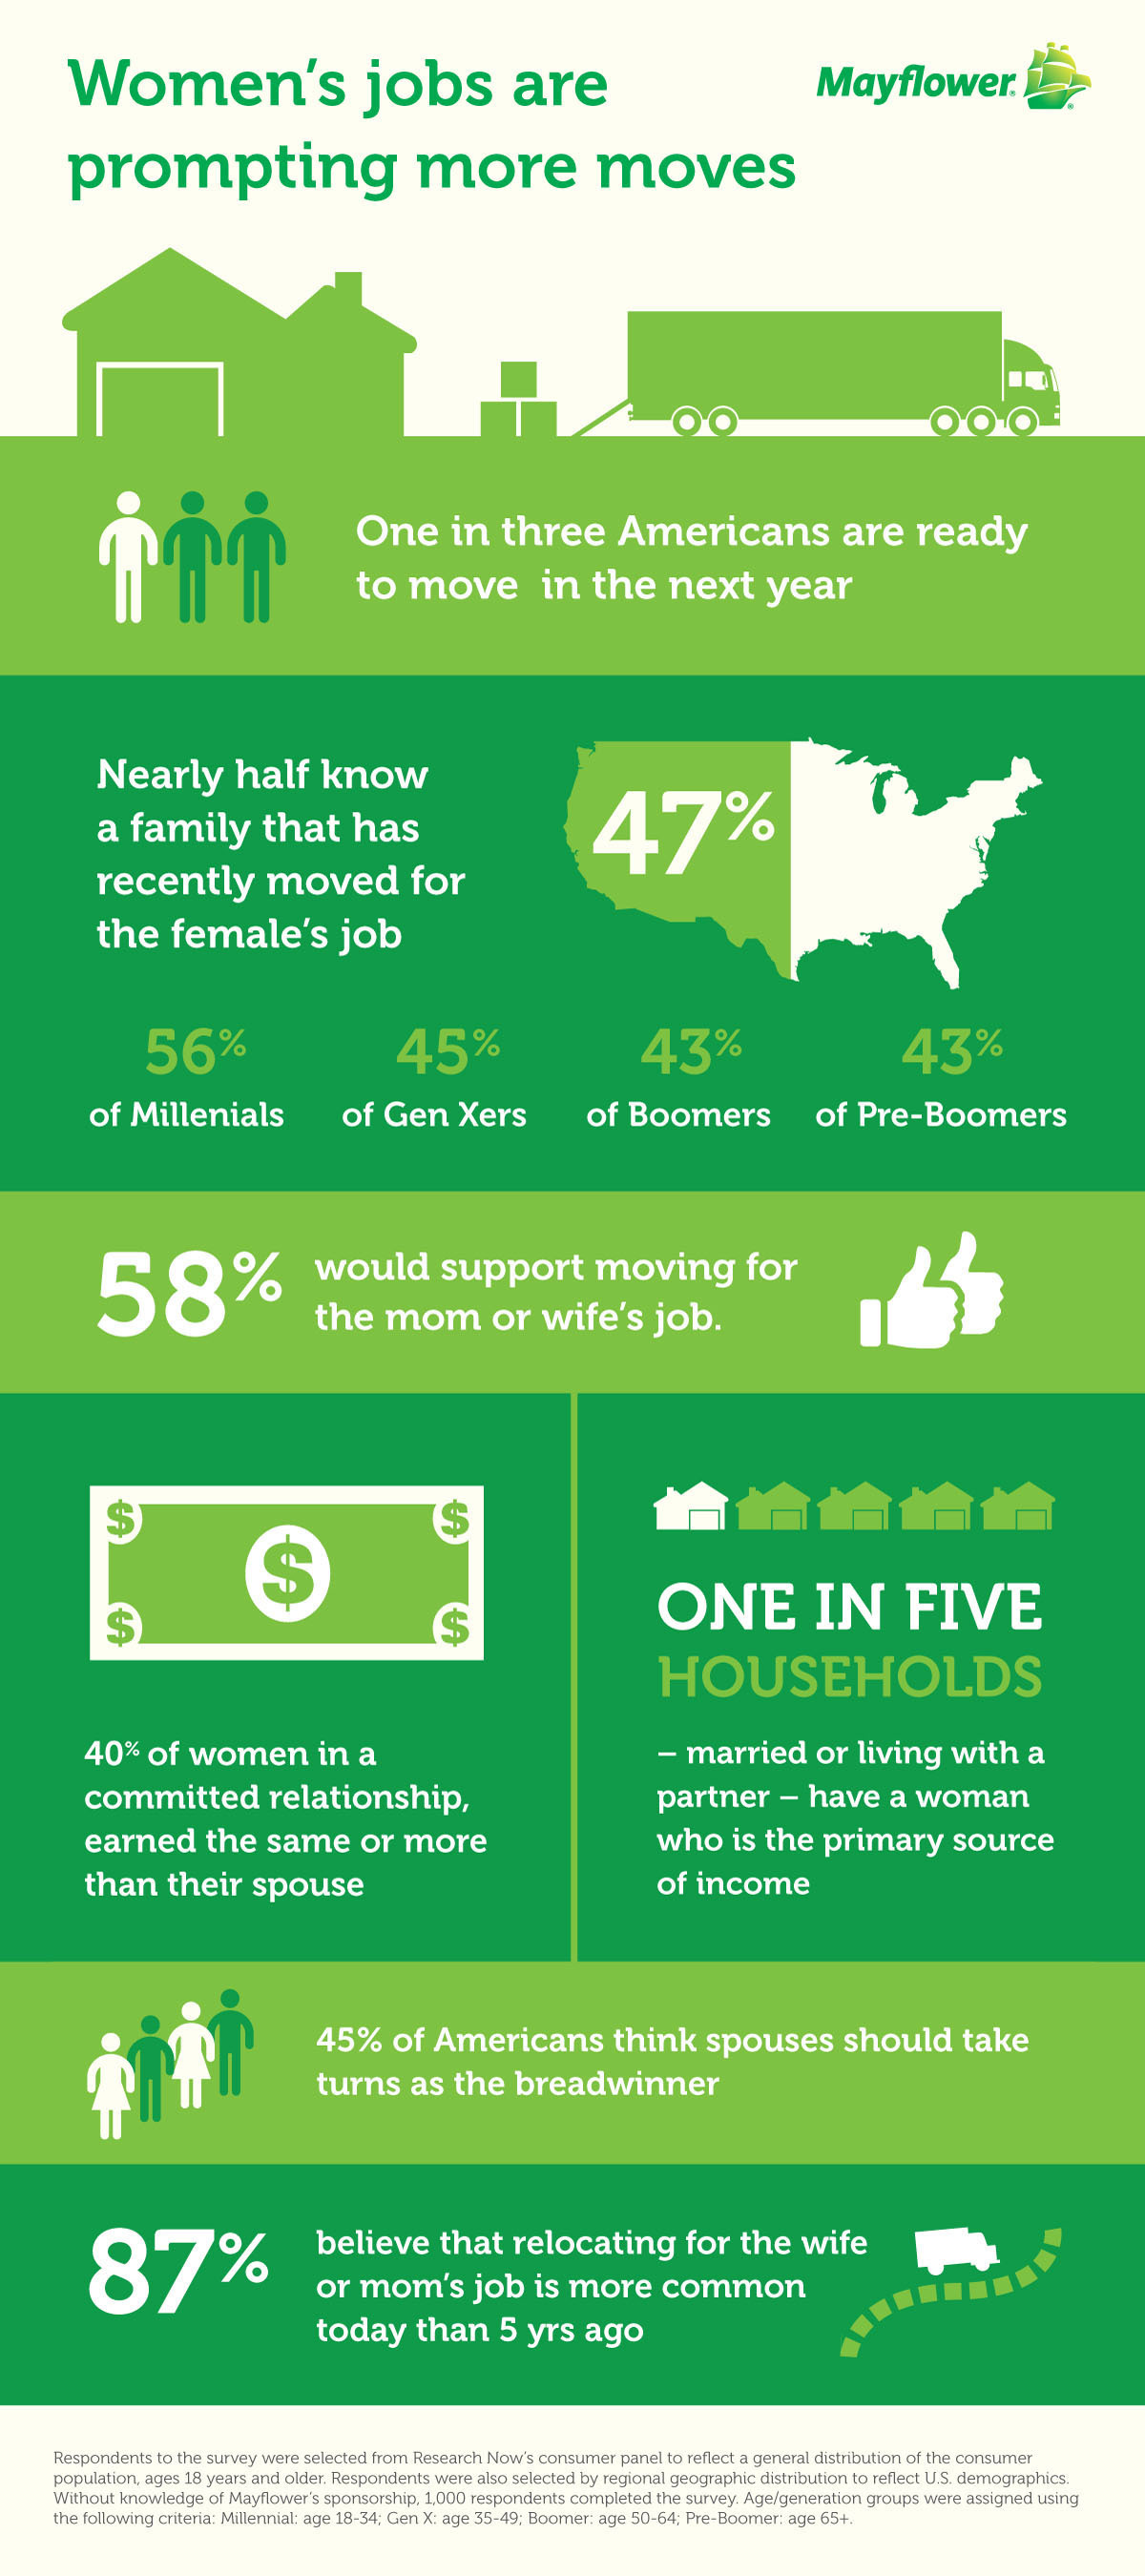 Mayflower Survey Reveals Families Are More Willing to Relocate for the Woman's Job